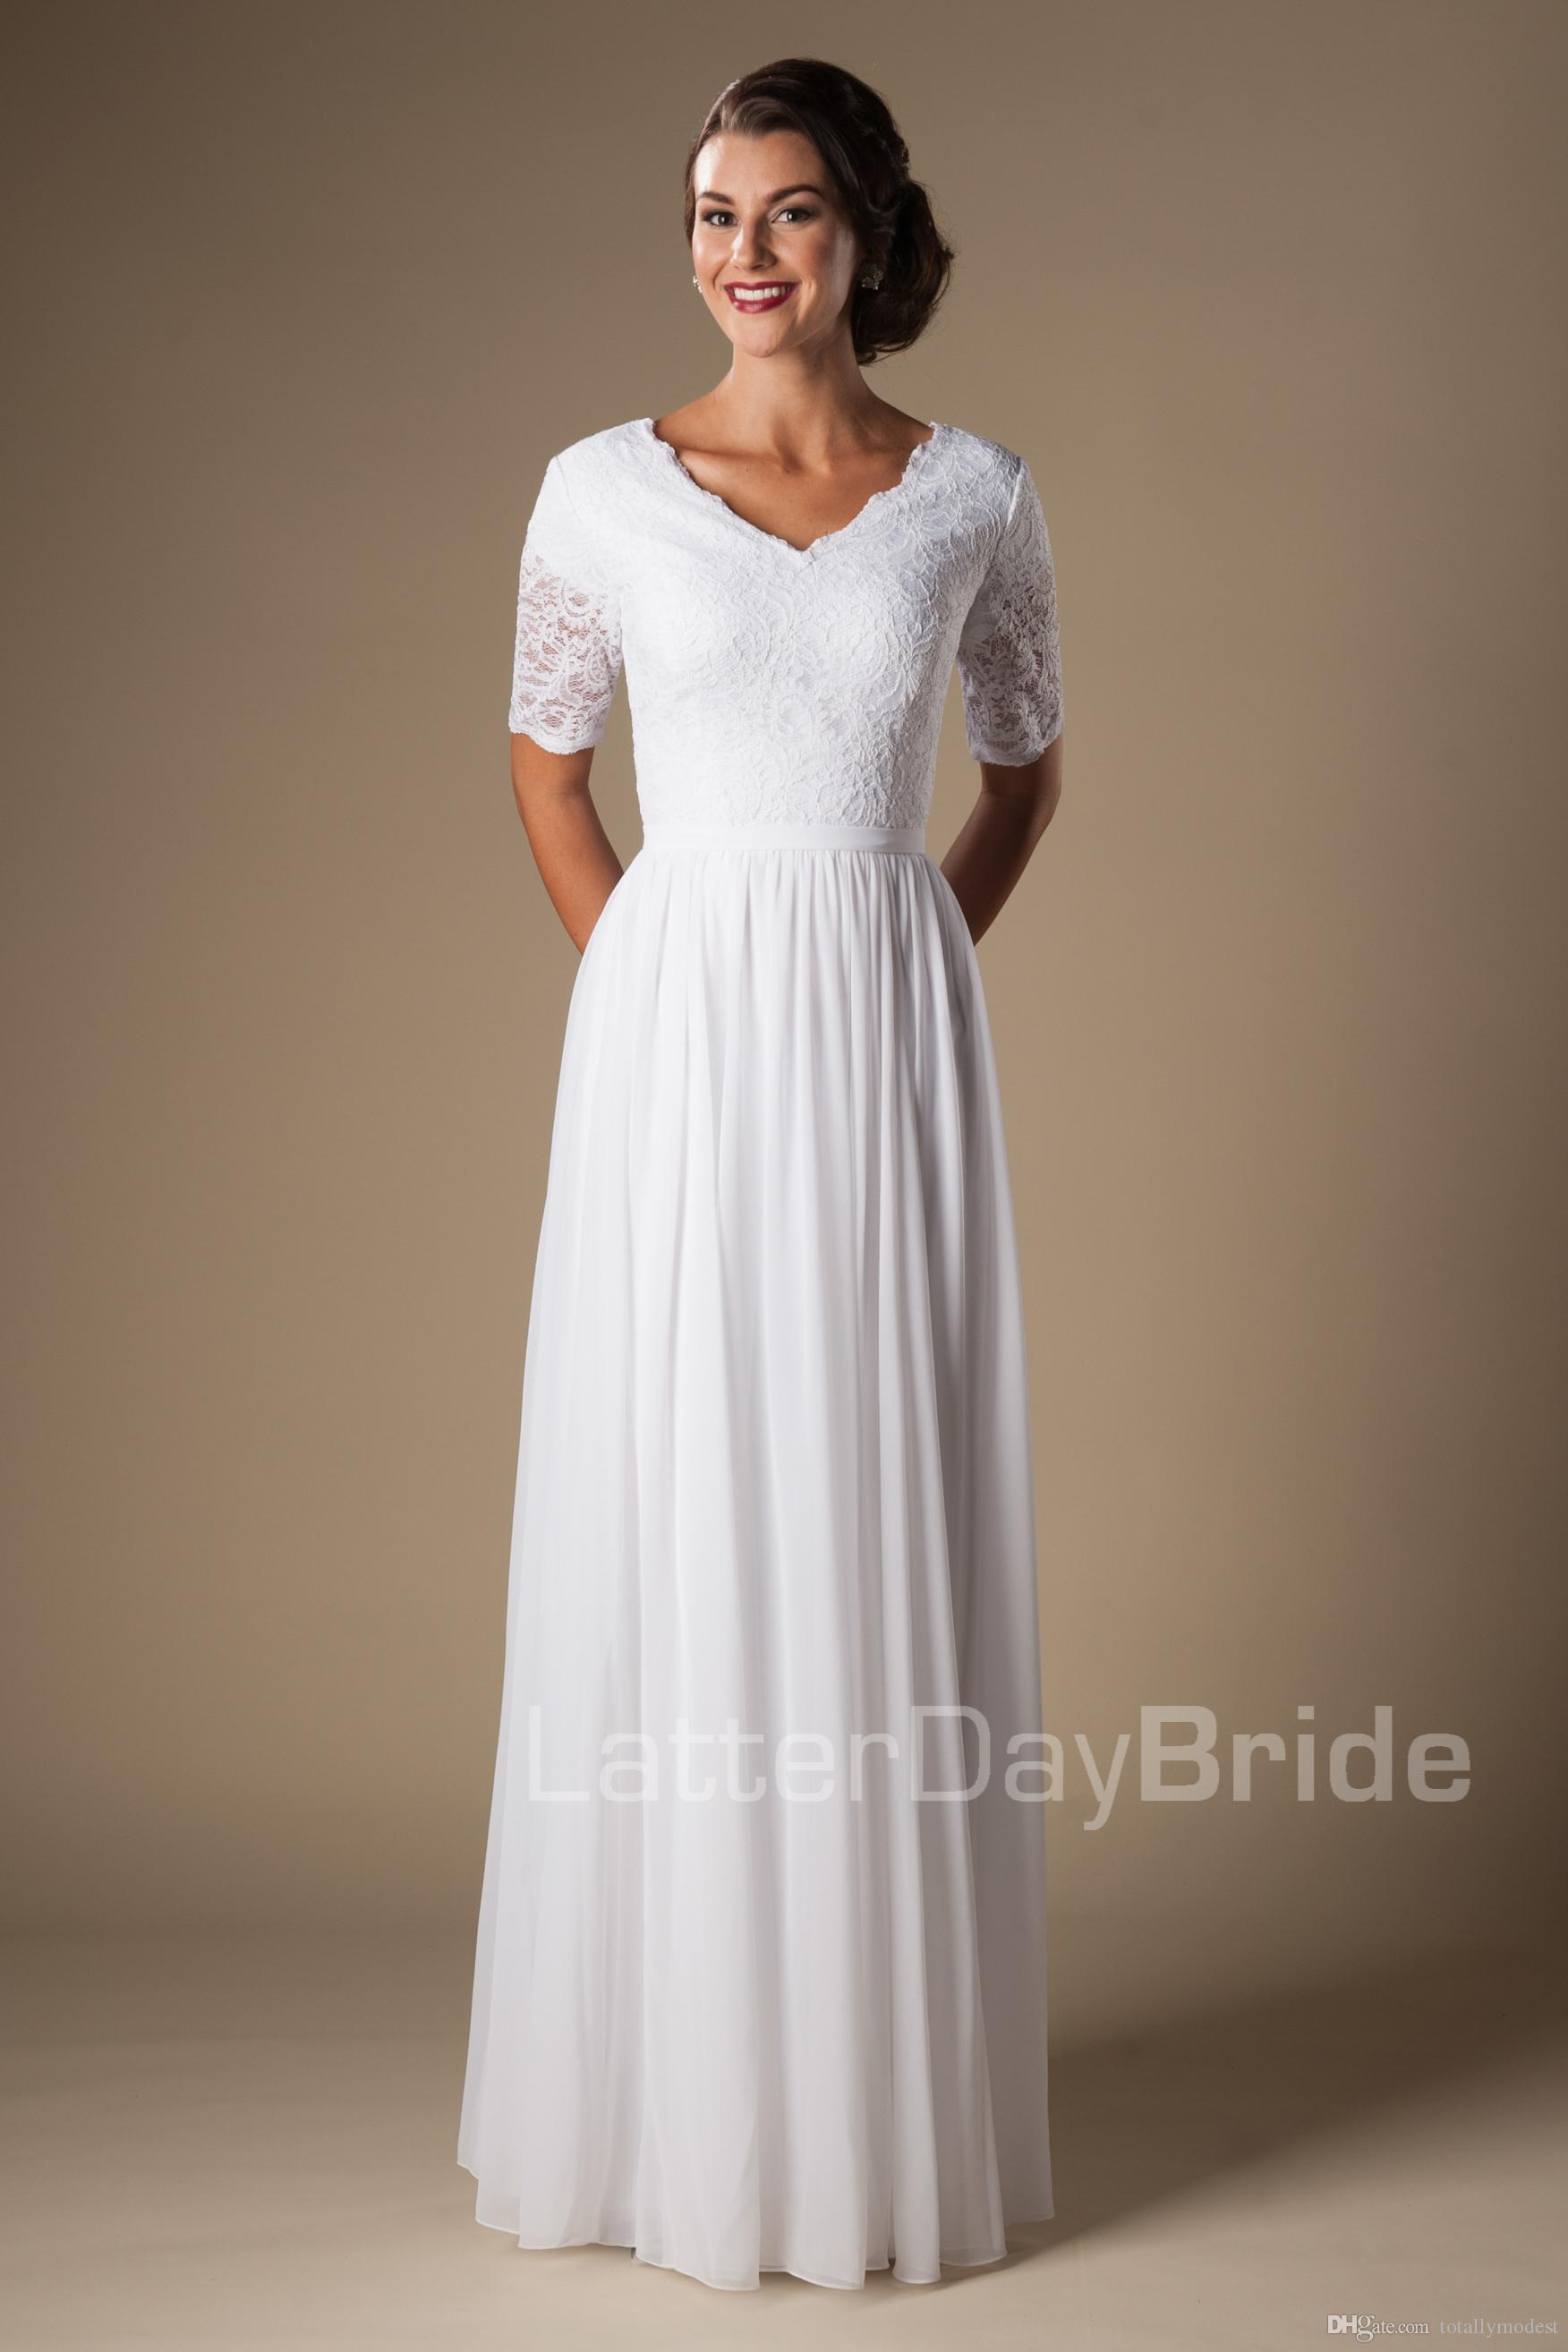 2016 vintage ivory lace chiffon modest wedding dresses with 12 2016 vintage ivory lace chiffon modest wedding dresses with 12 sleeves v neck temple bridal gowns informal bridal dress custom made cheap wedding dresses ombrellifo Choice Image